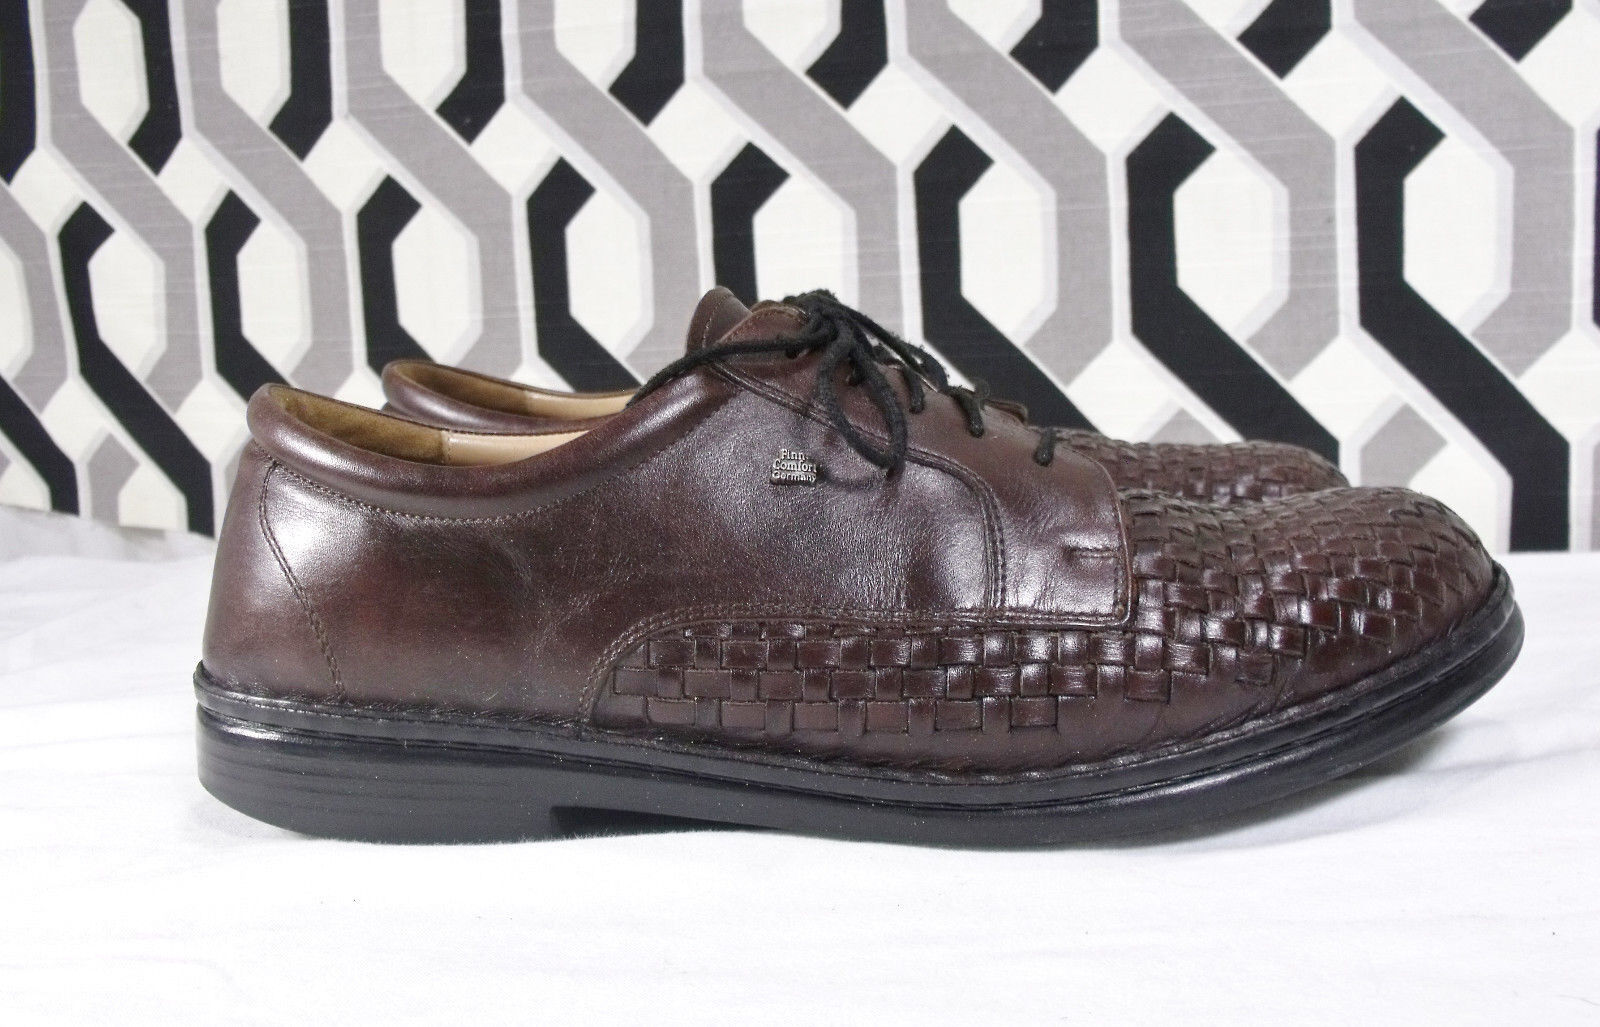 Finn Comfort Brown Woven Leather Lace Up Oxfords Sz US 9.5